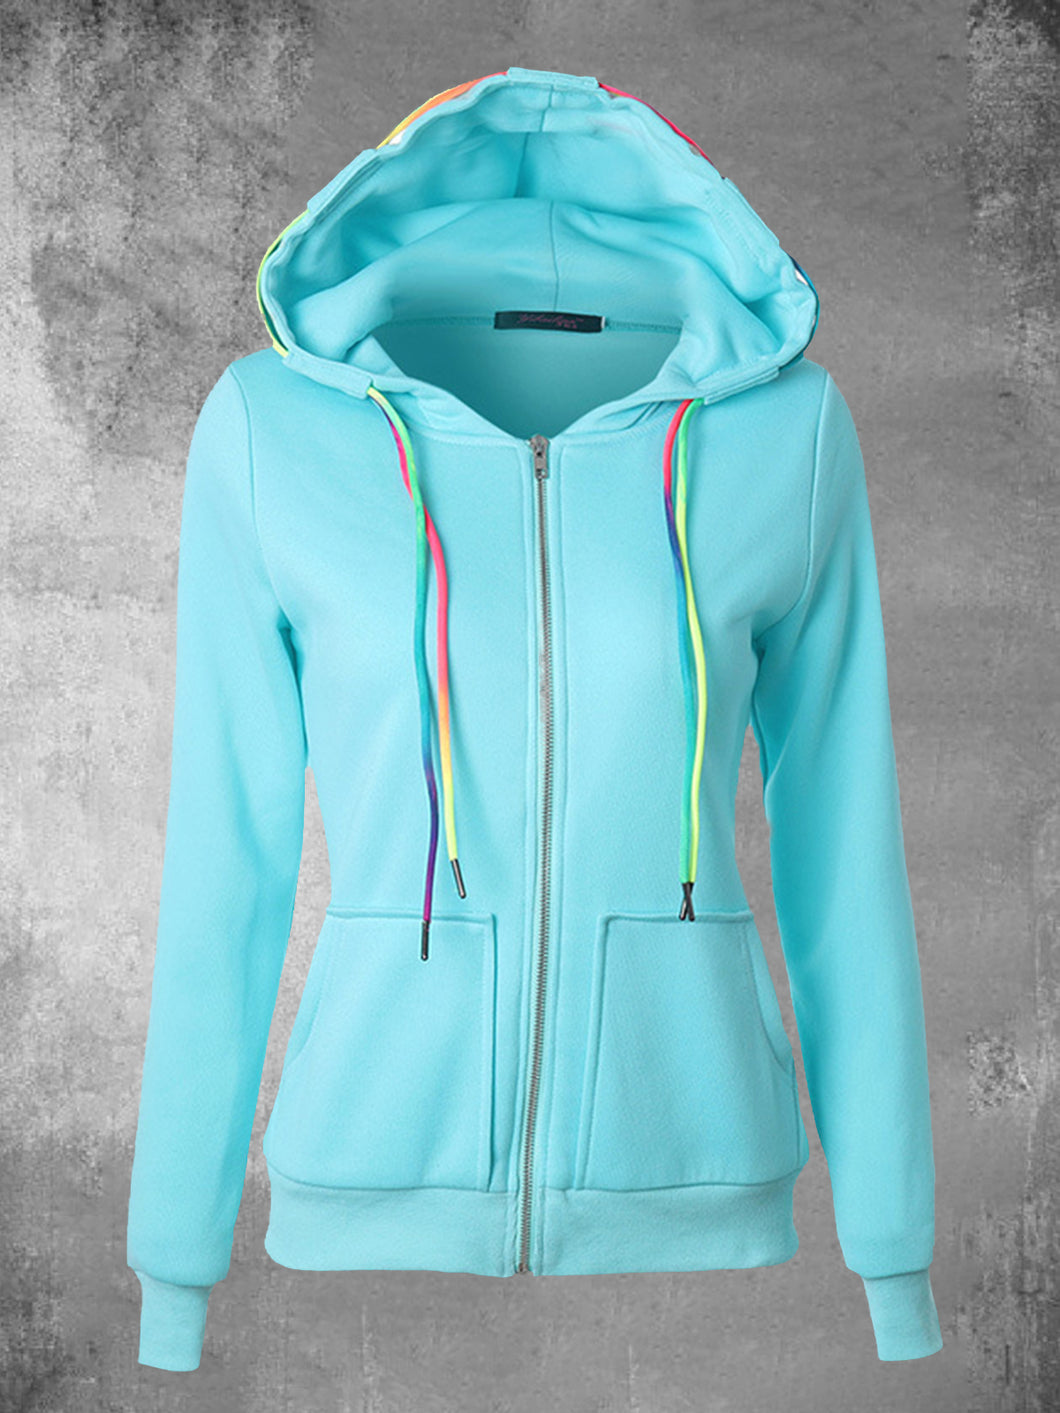 Women Drawstring Hooded Zipper Cardigan Sweatshirts with Pocket